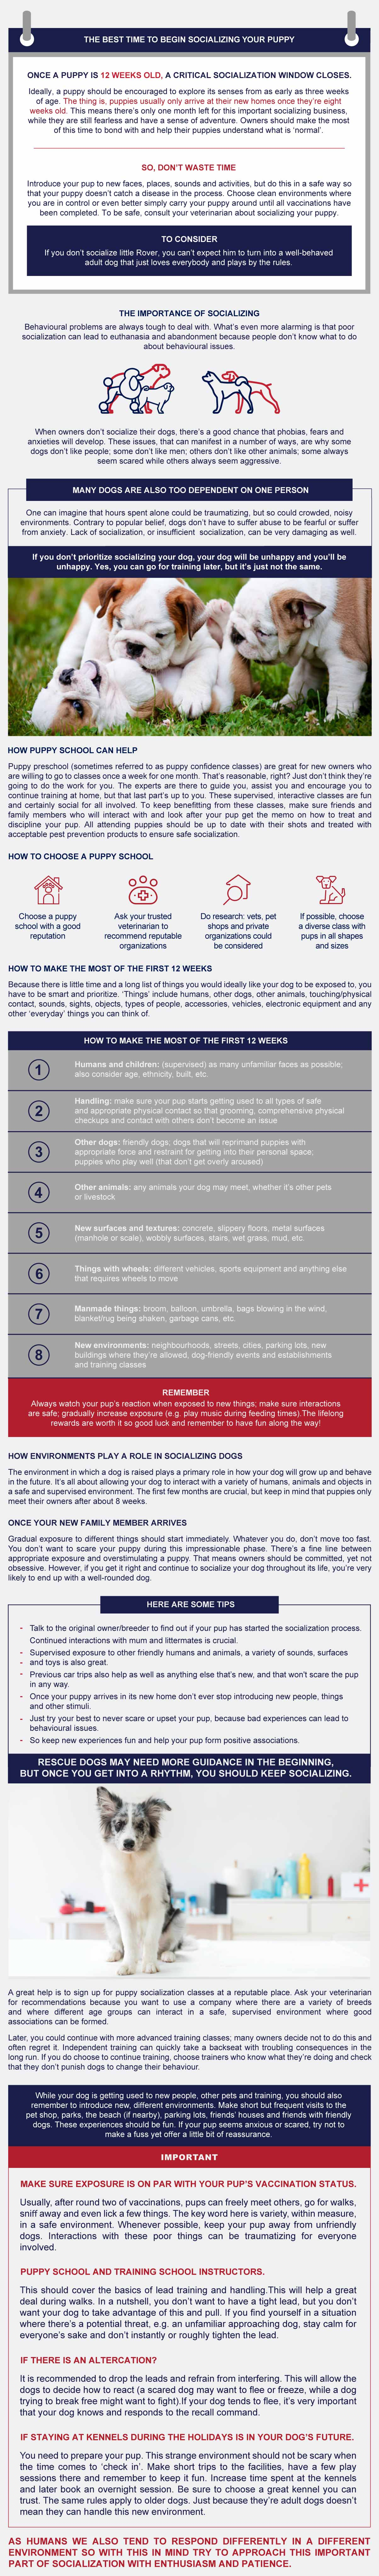 infographic importance of socializing puppies